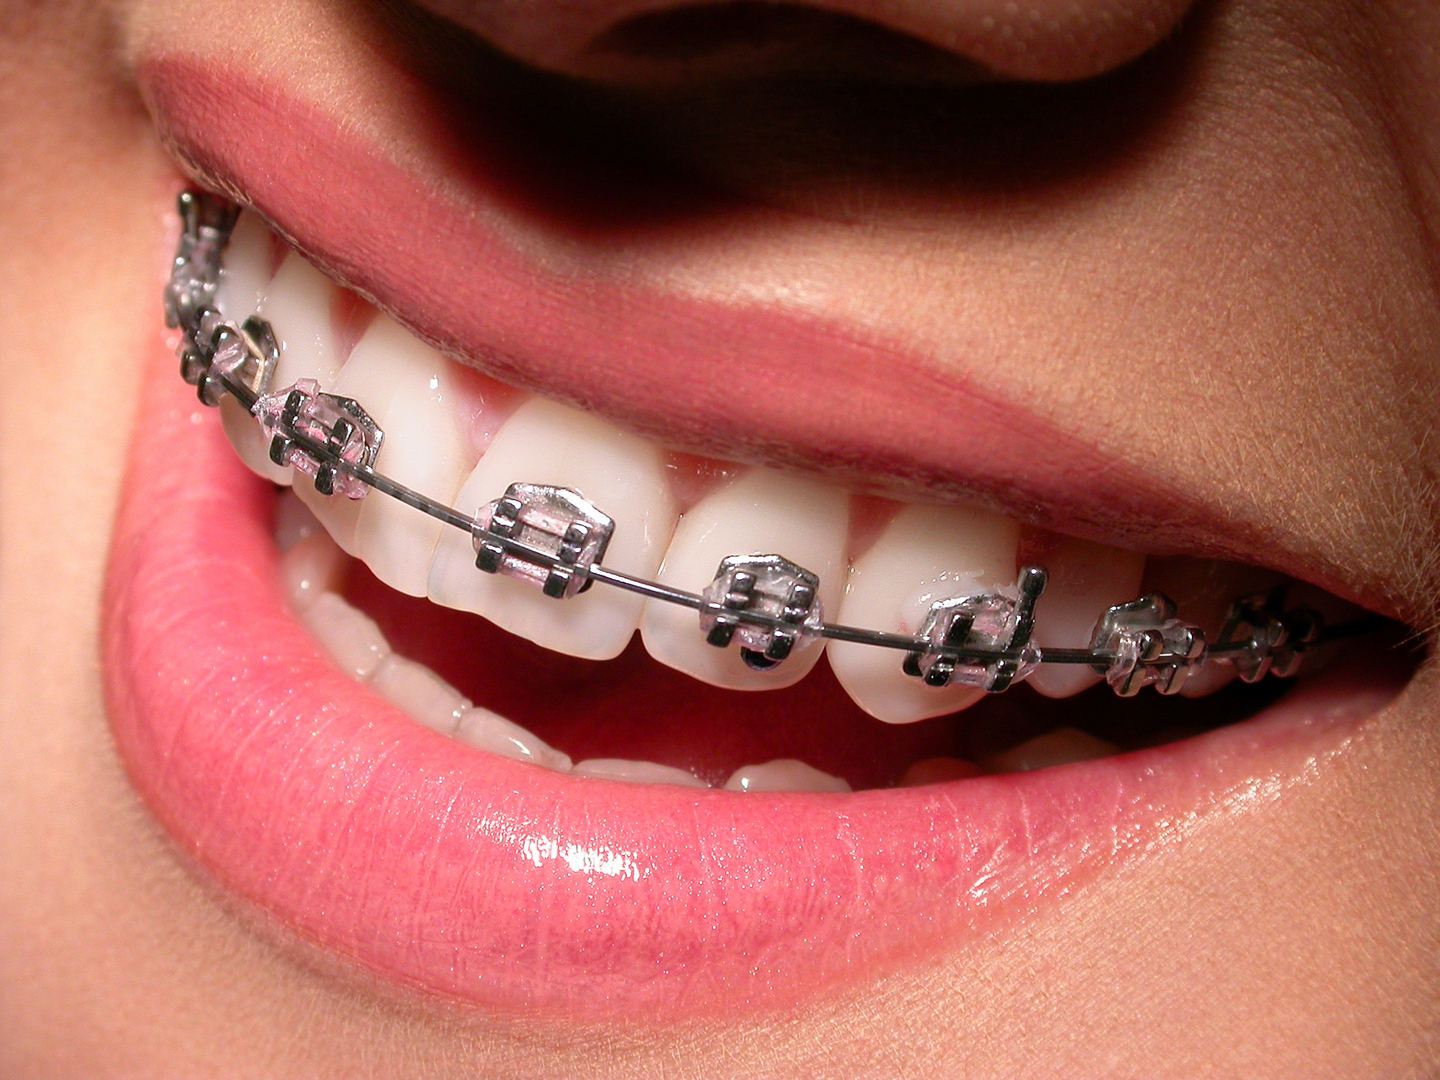 Girl-with-Braces-Smiling